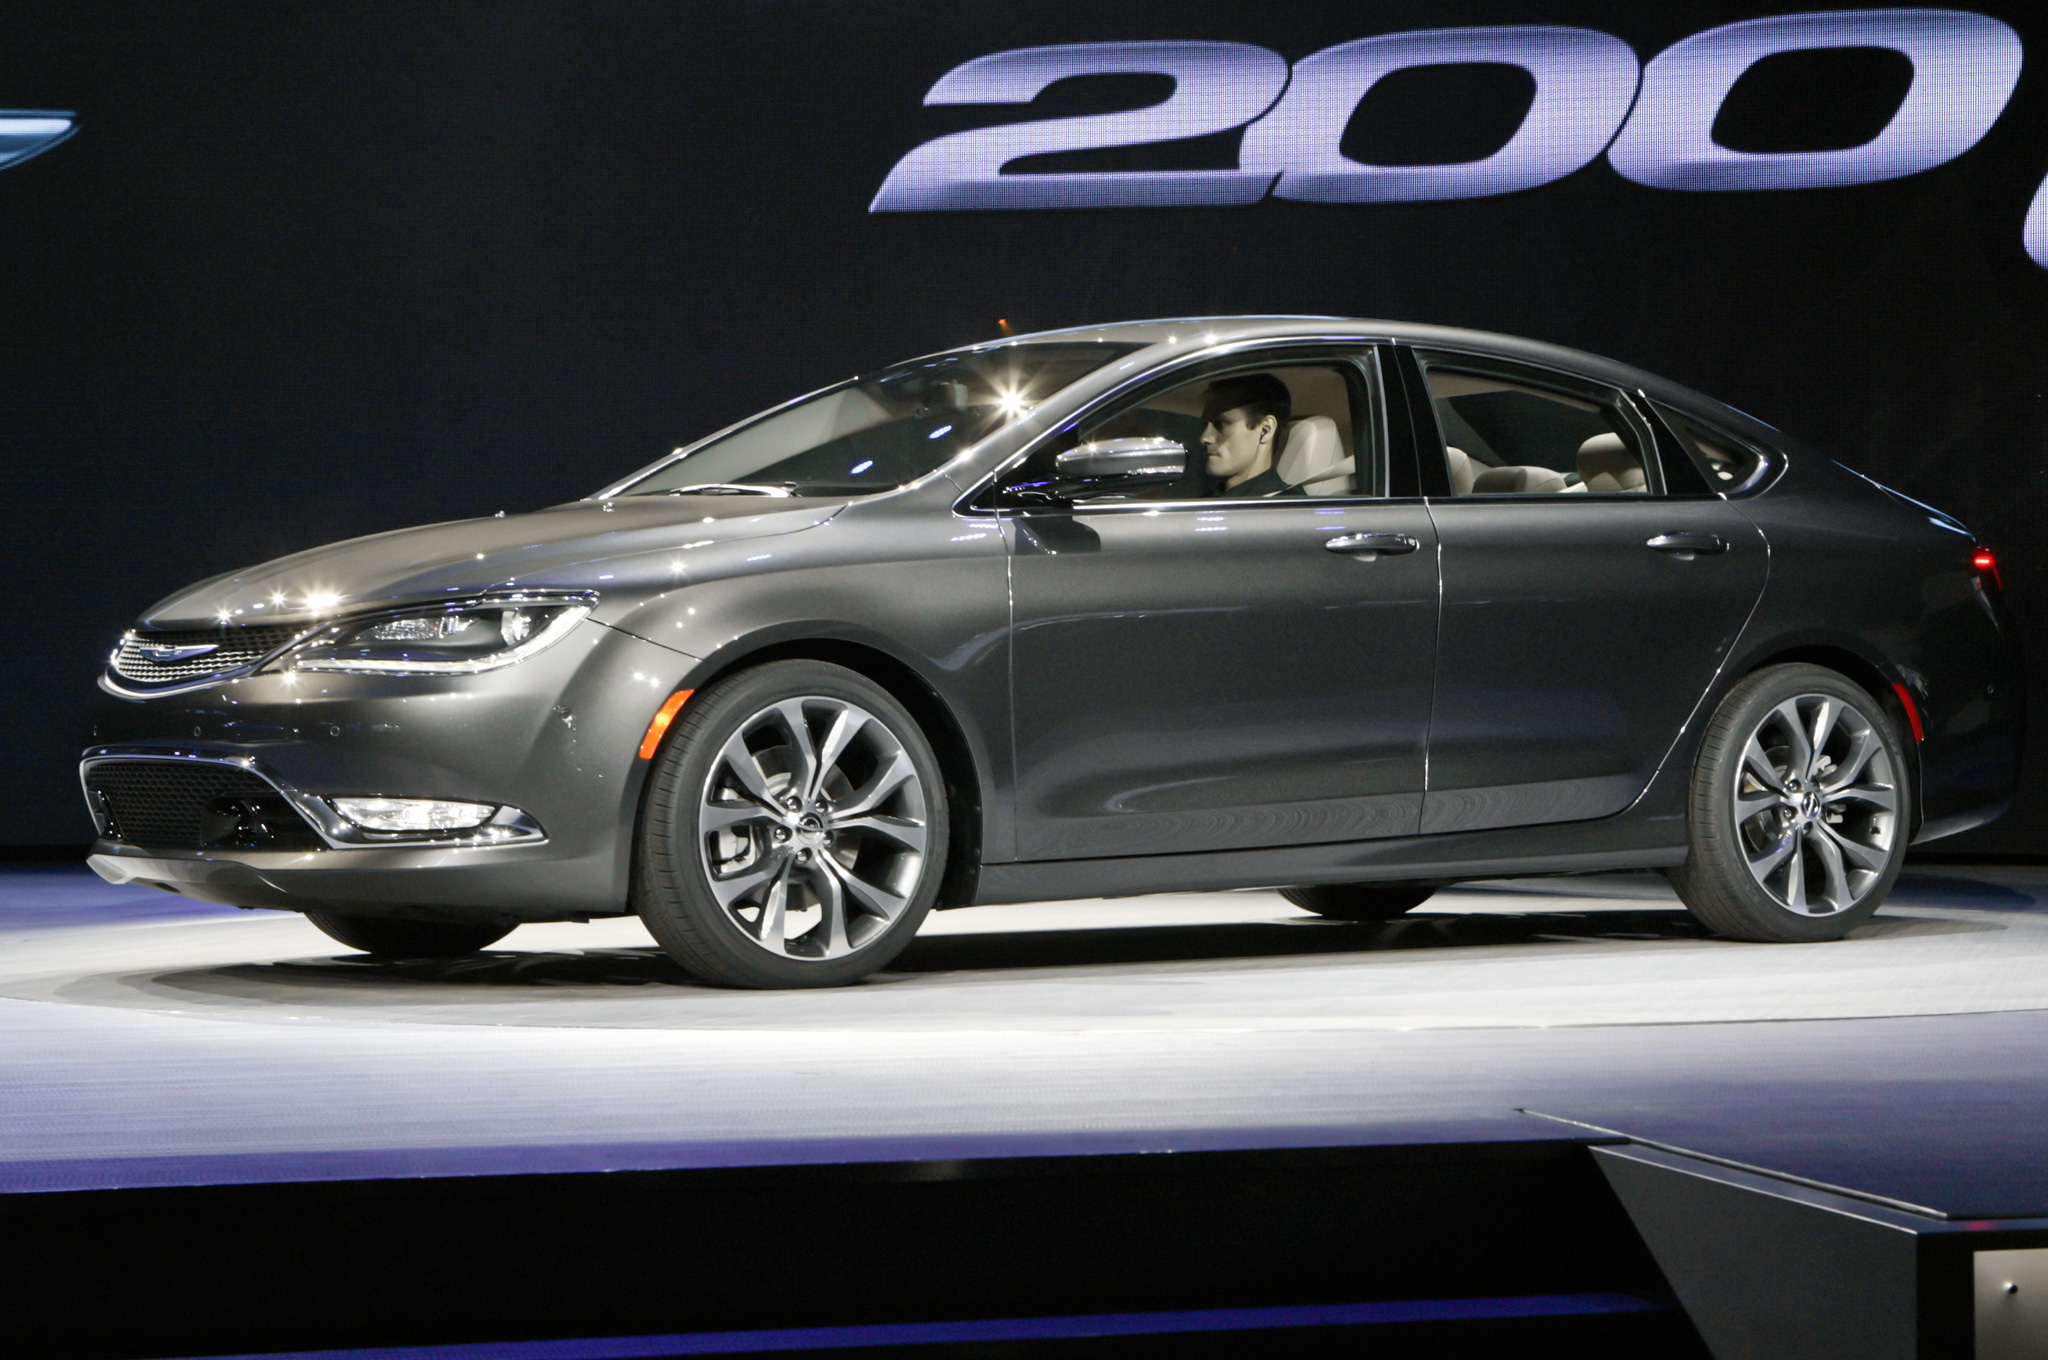 2015 Chrysler 200 Side View (Photo 10 of 11)